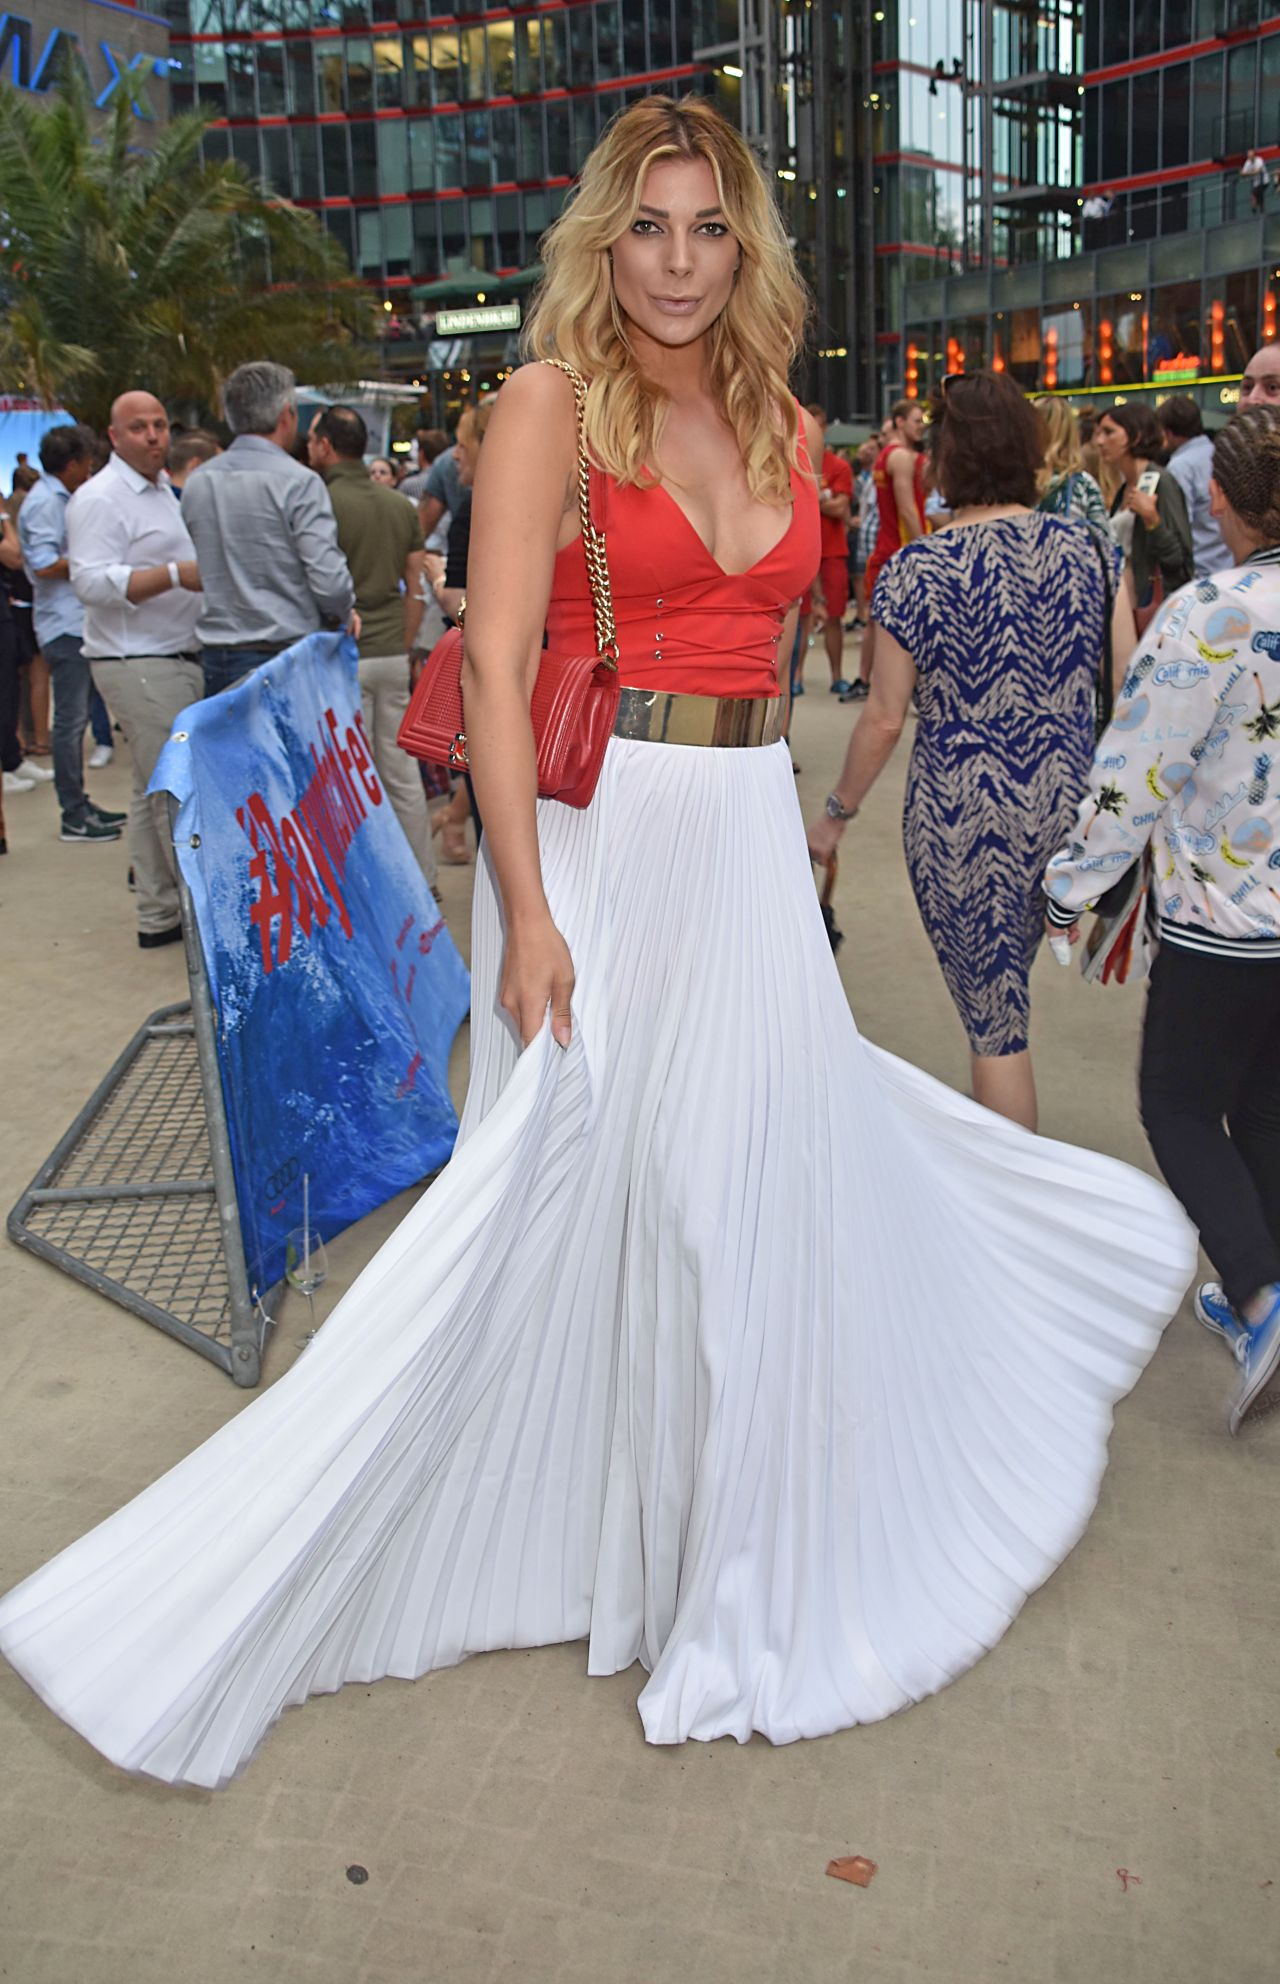 Hot pics of Kimberley Garner recommend